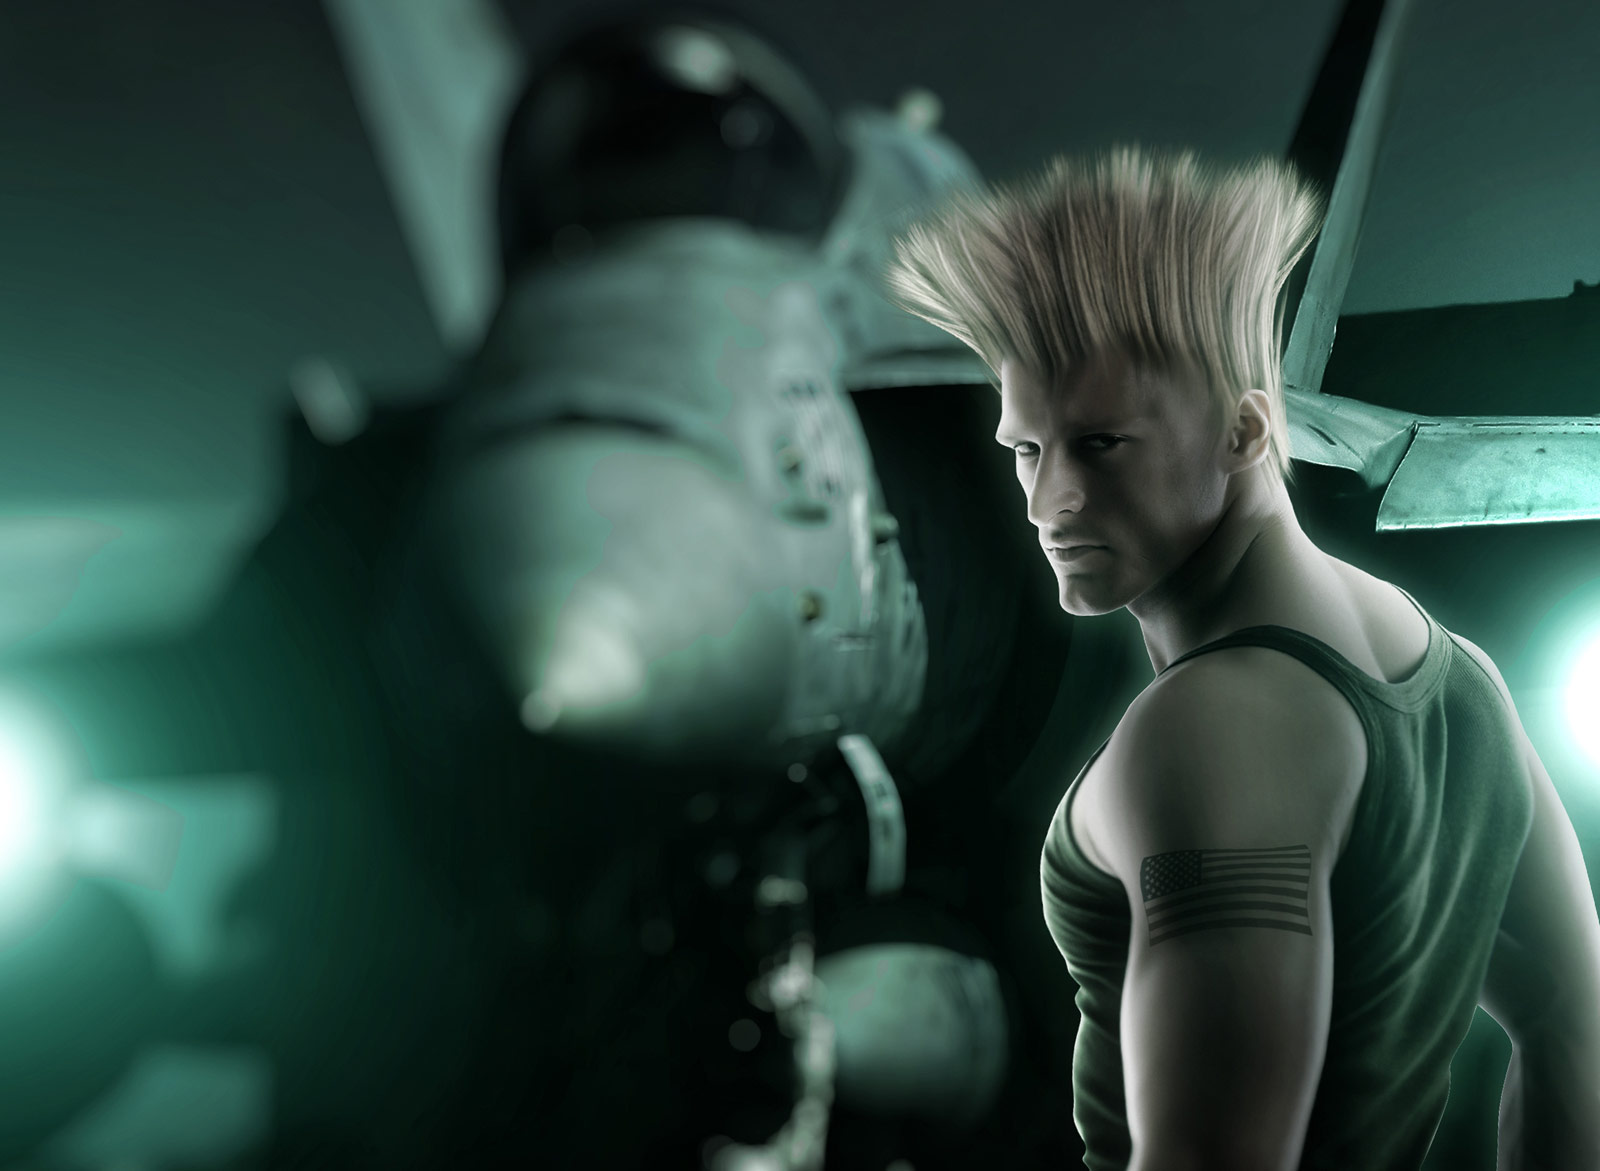 Hyper real Guile artwork